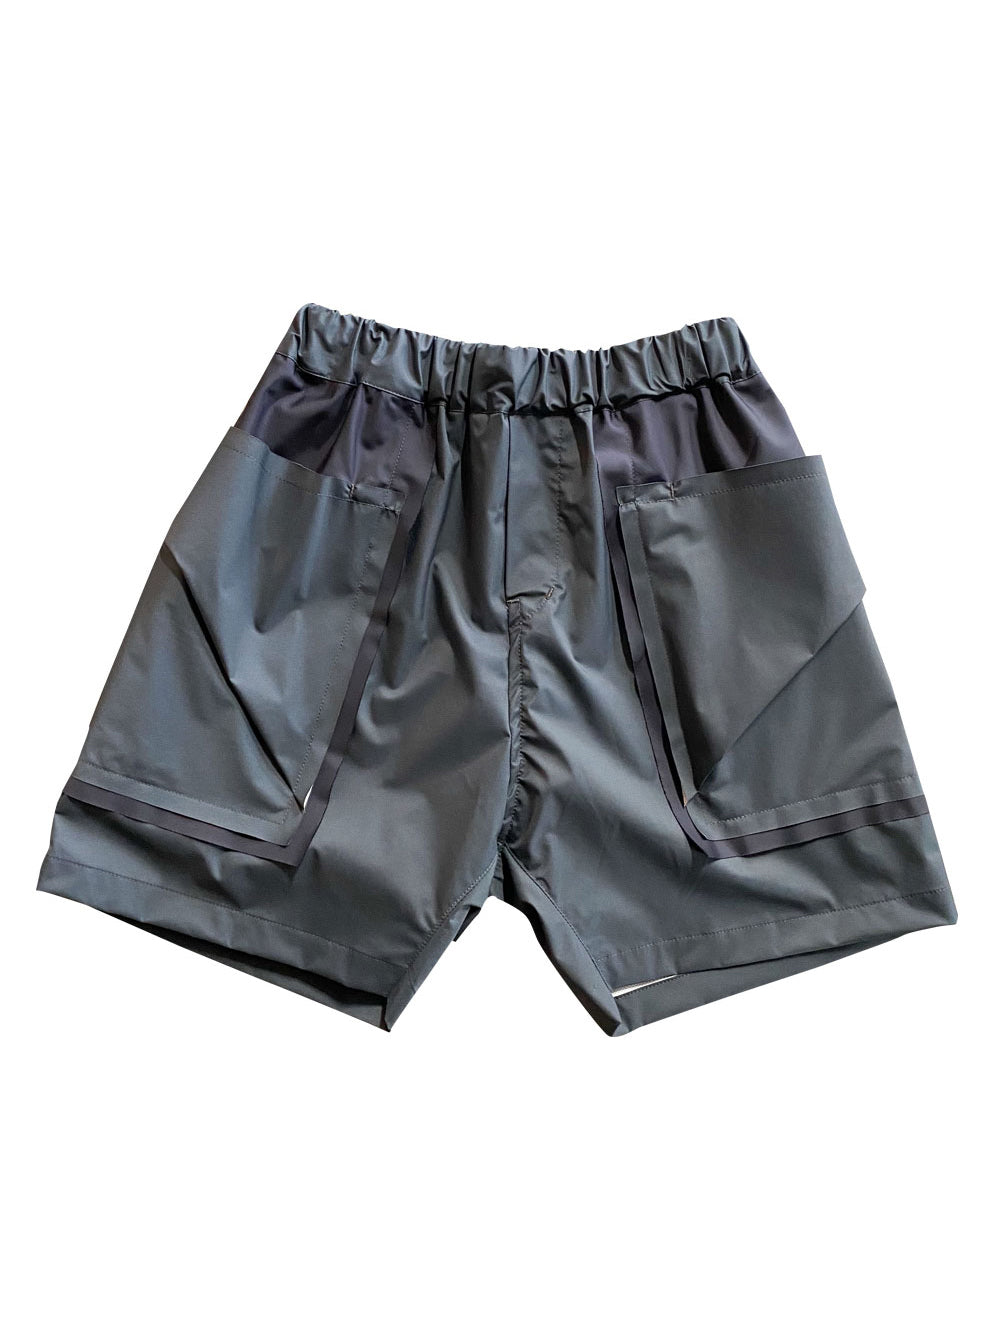 Charcoal Nunuforme Shorts